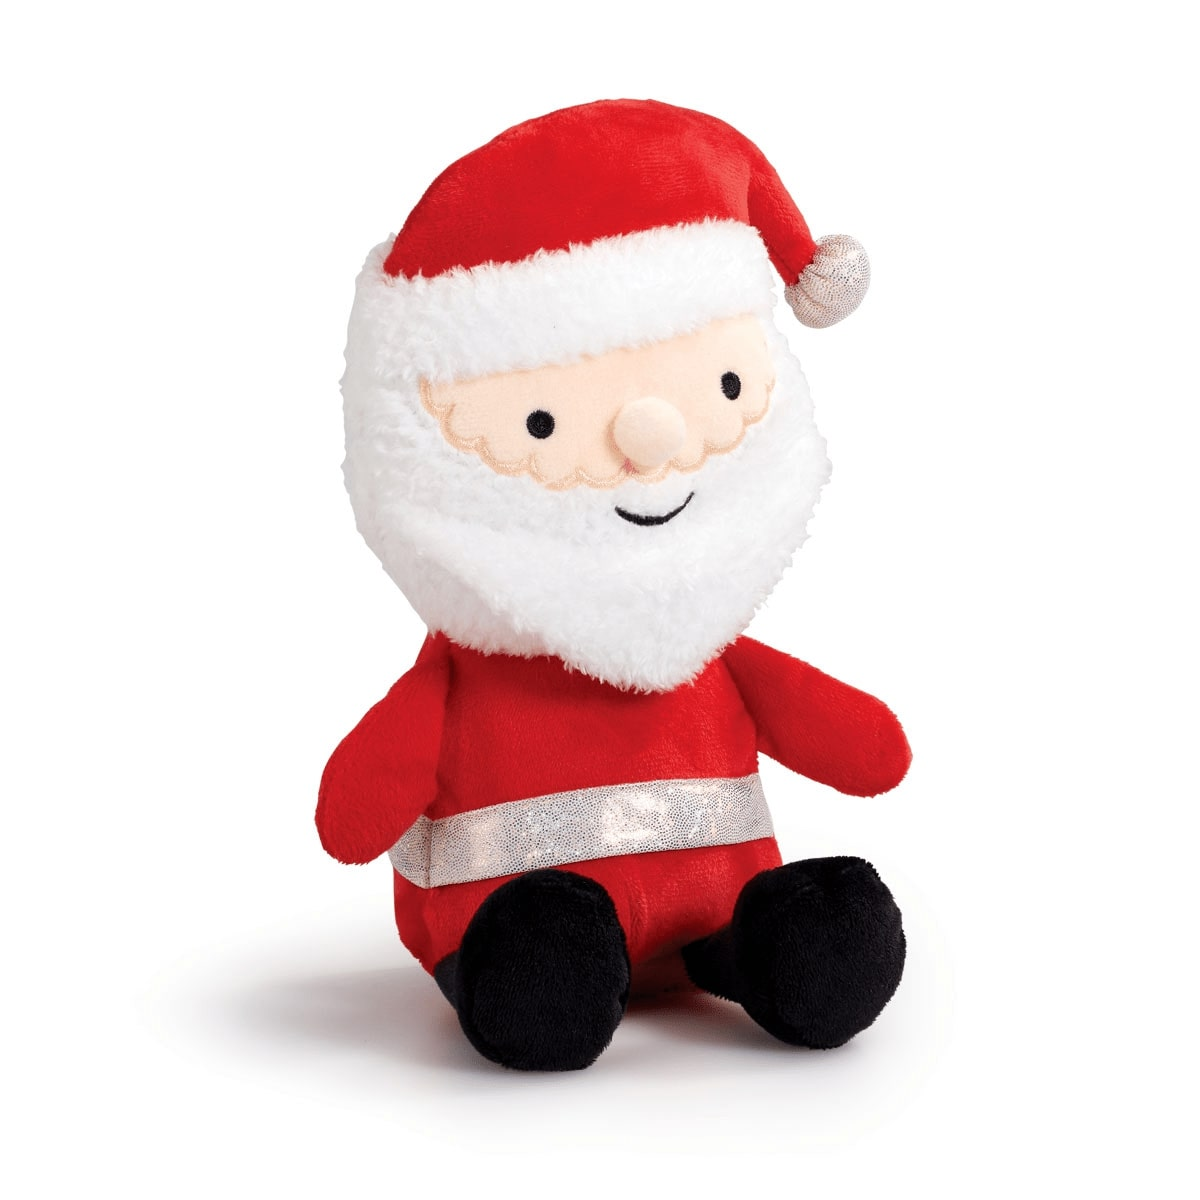 Santa Plush Toy - Early Learning Centre